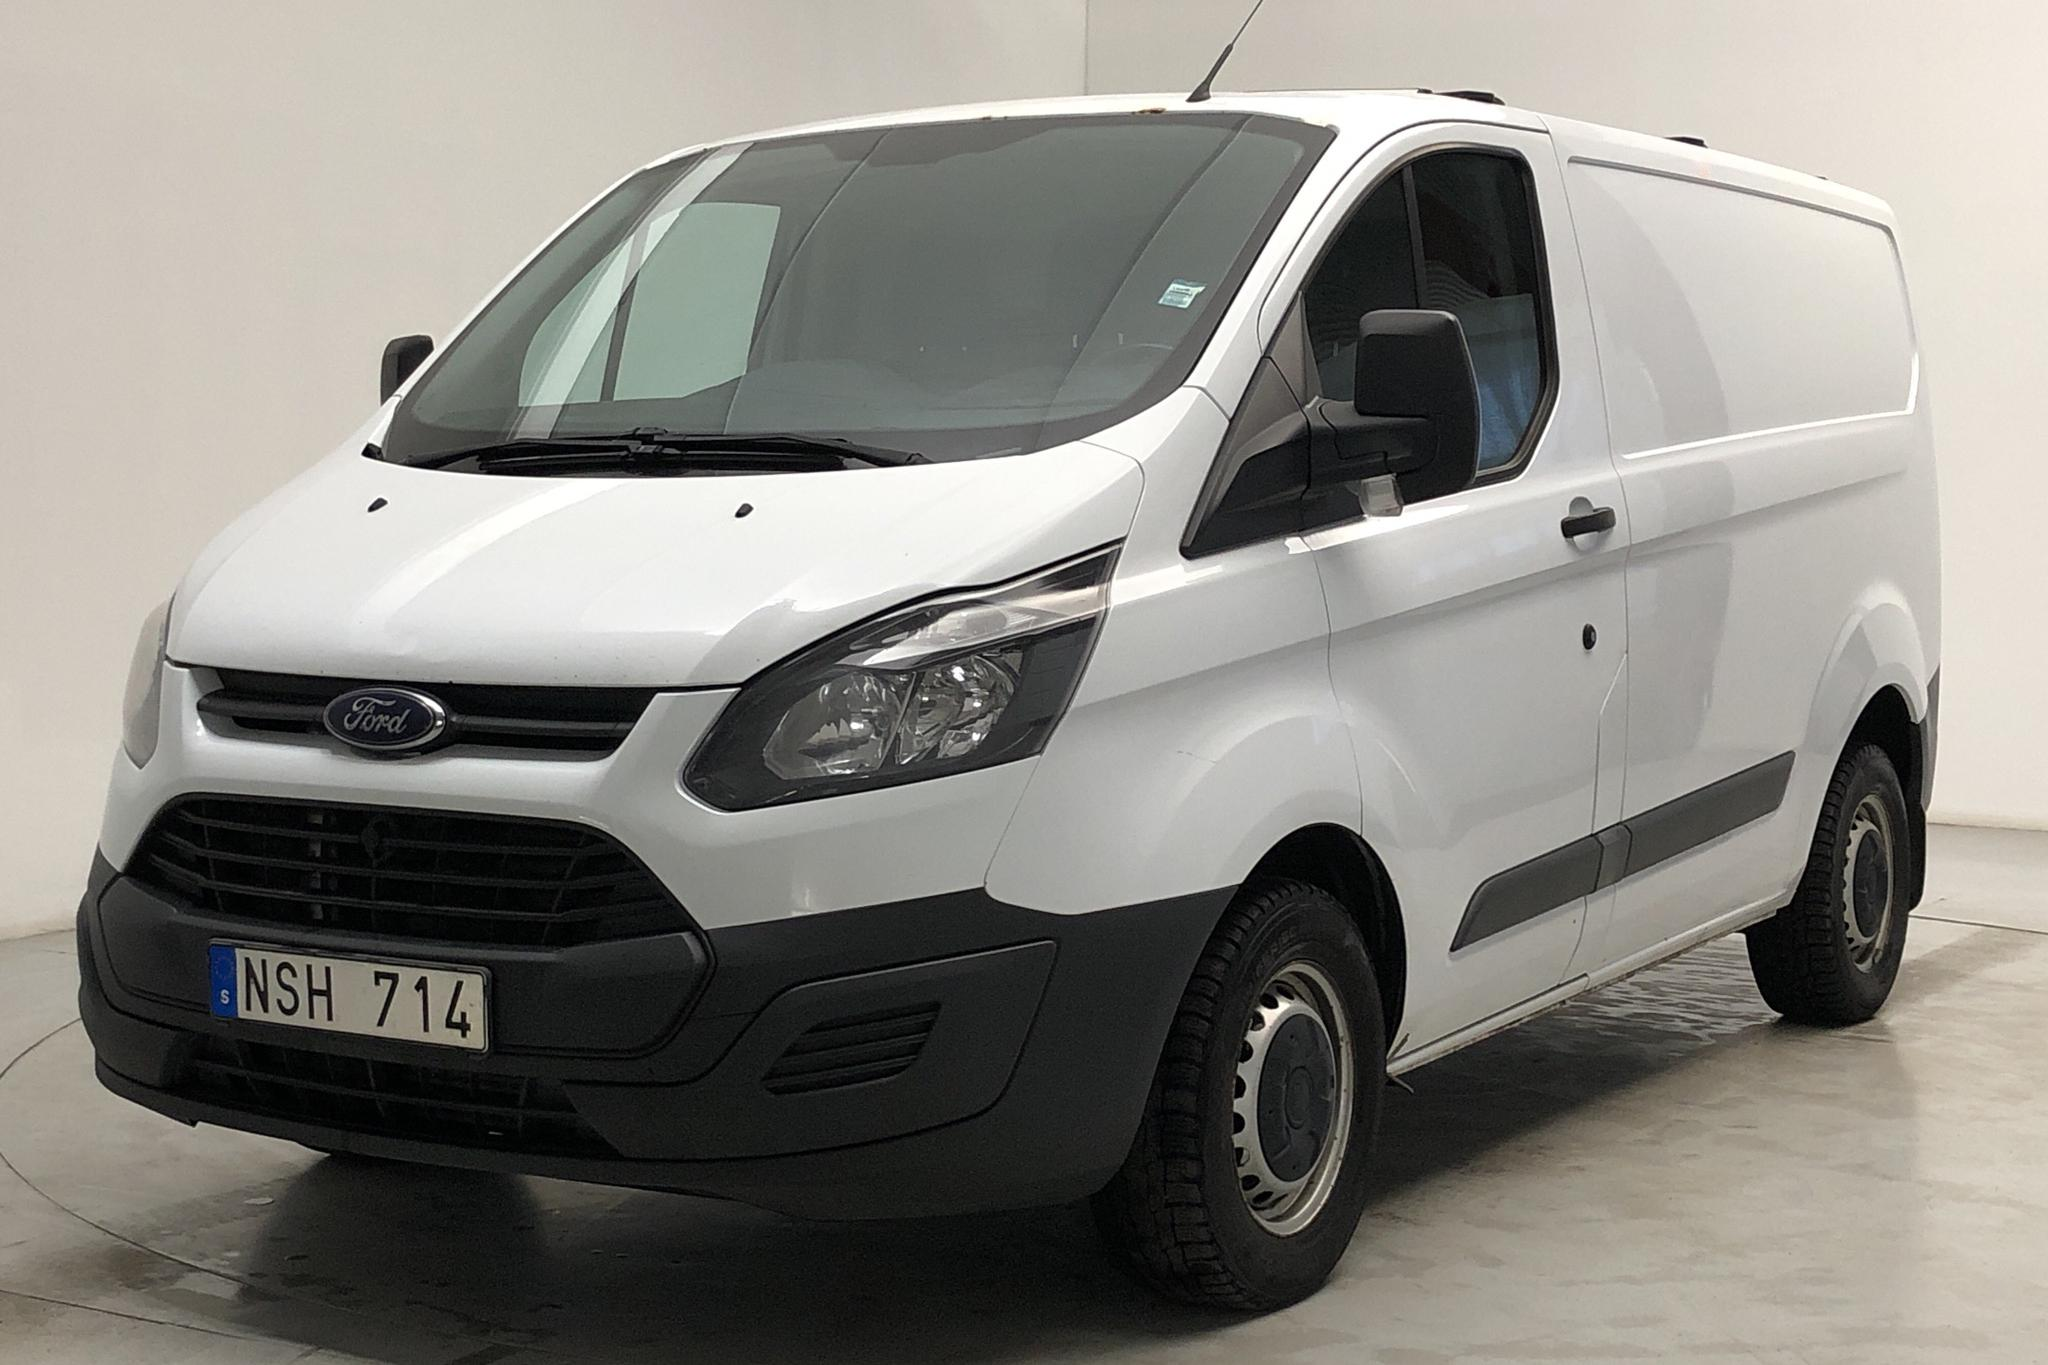 Ford Transit Custom 270 (100hk) - 142 910 km - Manual - white - 2014